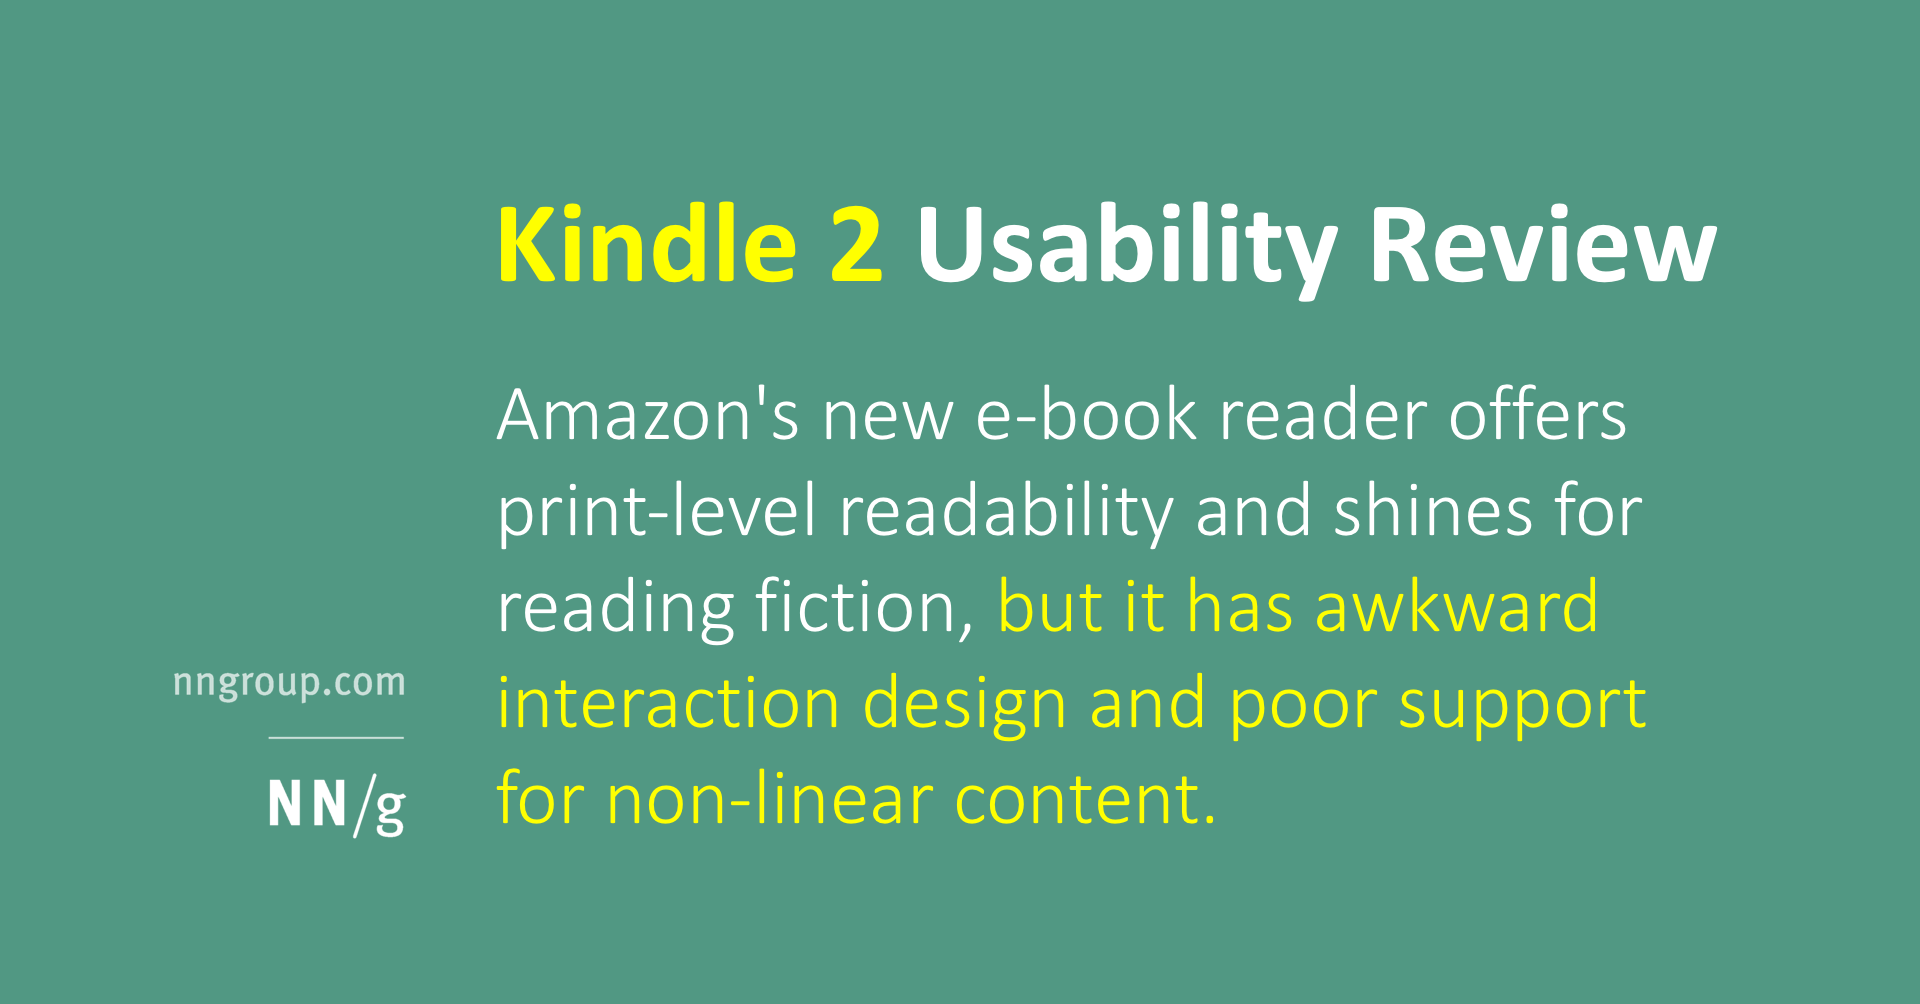 Kindle 2 Usability Review